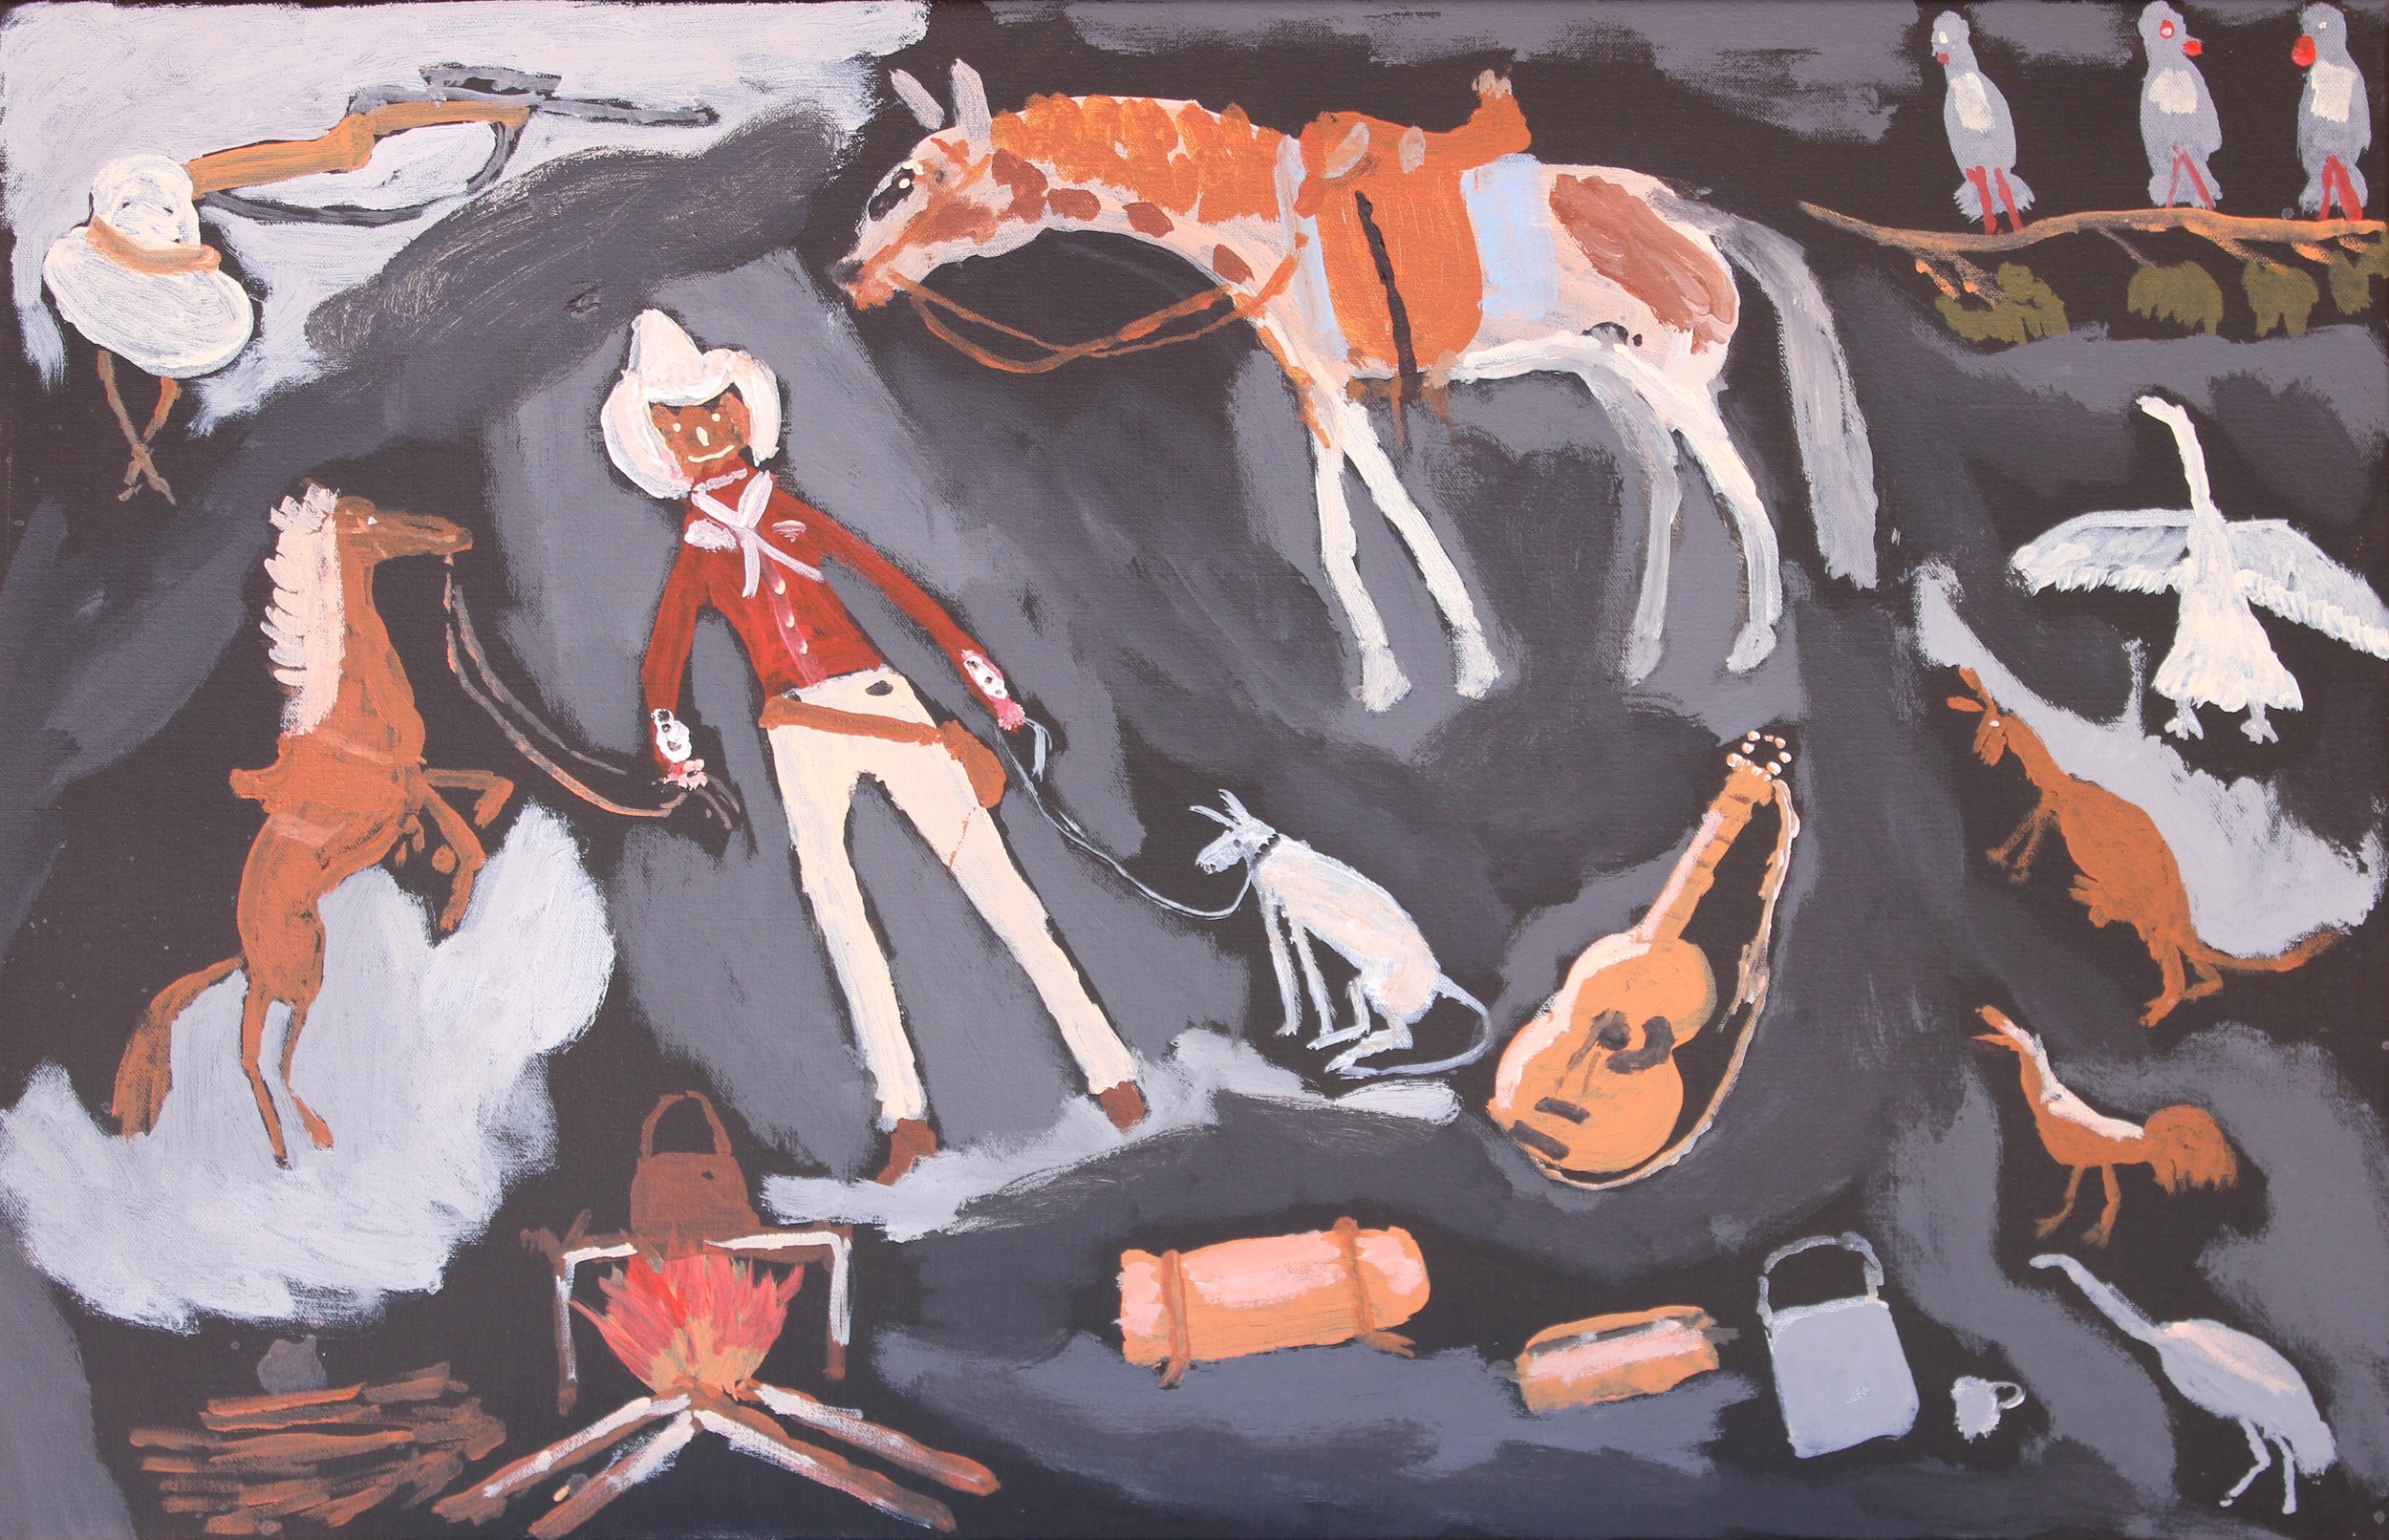 """Jimmy Pompey  Cowboy Story  Acrylic on canvas 18"""" x 28"""" (46 x 71 cm) Iwantja Arts Catalog #589-15   Price Available upon Request"""